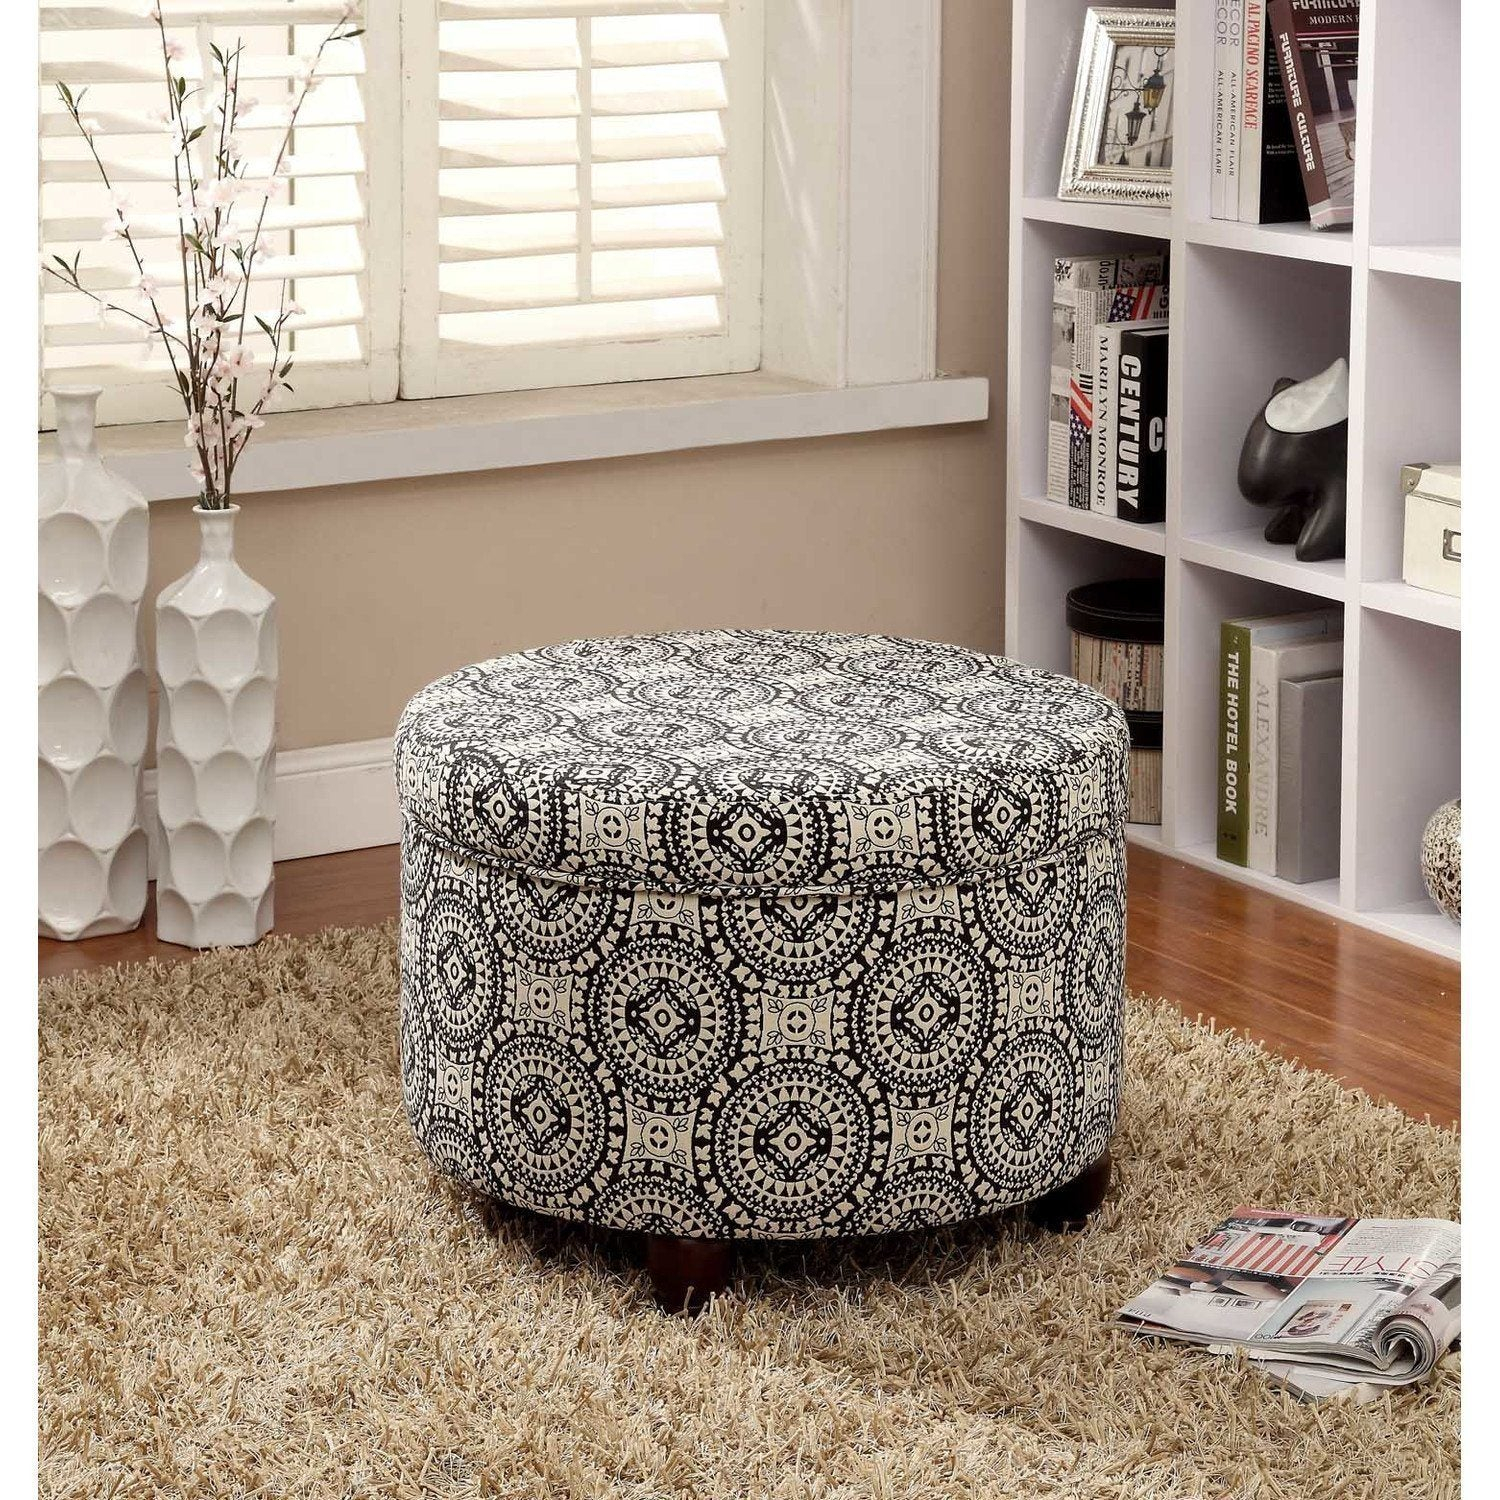 Round Storage Ottoman Medallion White Black Large Tufted Round Ottoman Features Medallion Sleek Contemporary Look White Black Medallion Round Ottoman